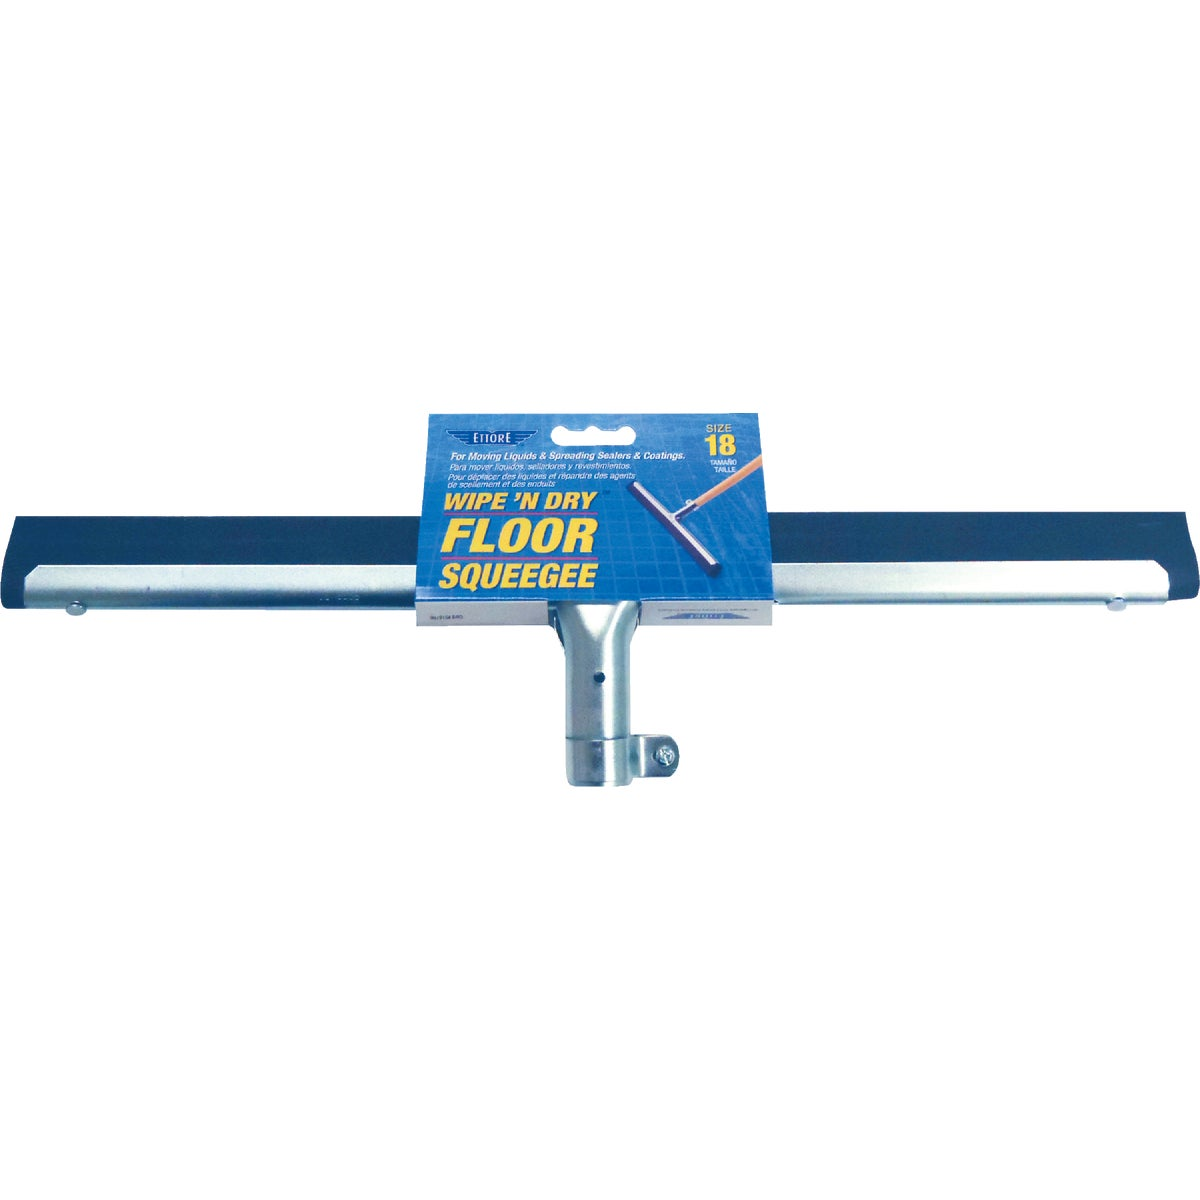 "18"" FLOOR SQUEEGEE - 61018 by Ettore Products Co"